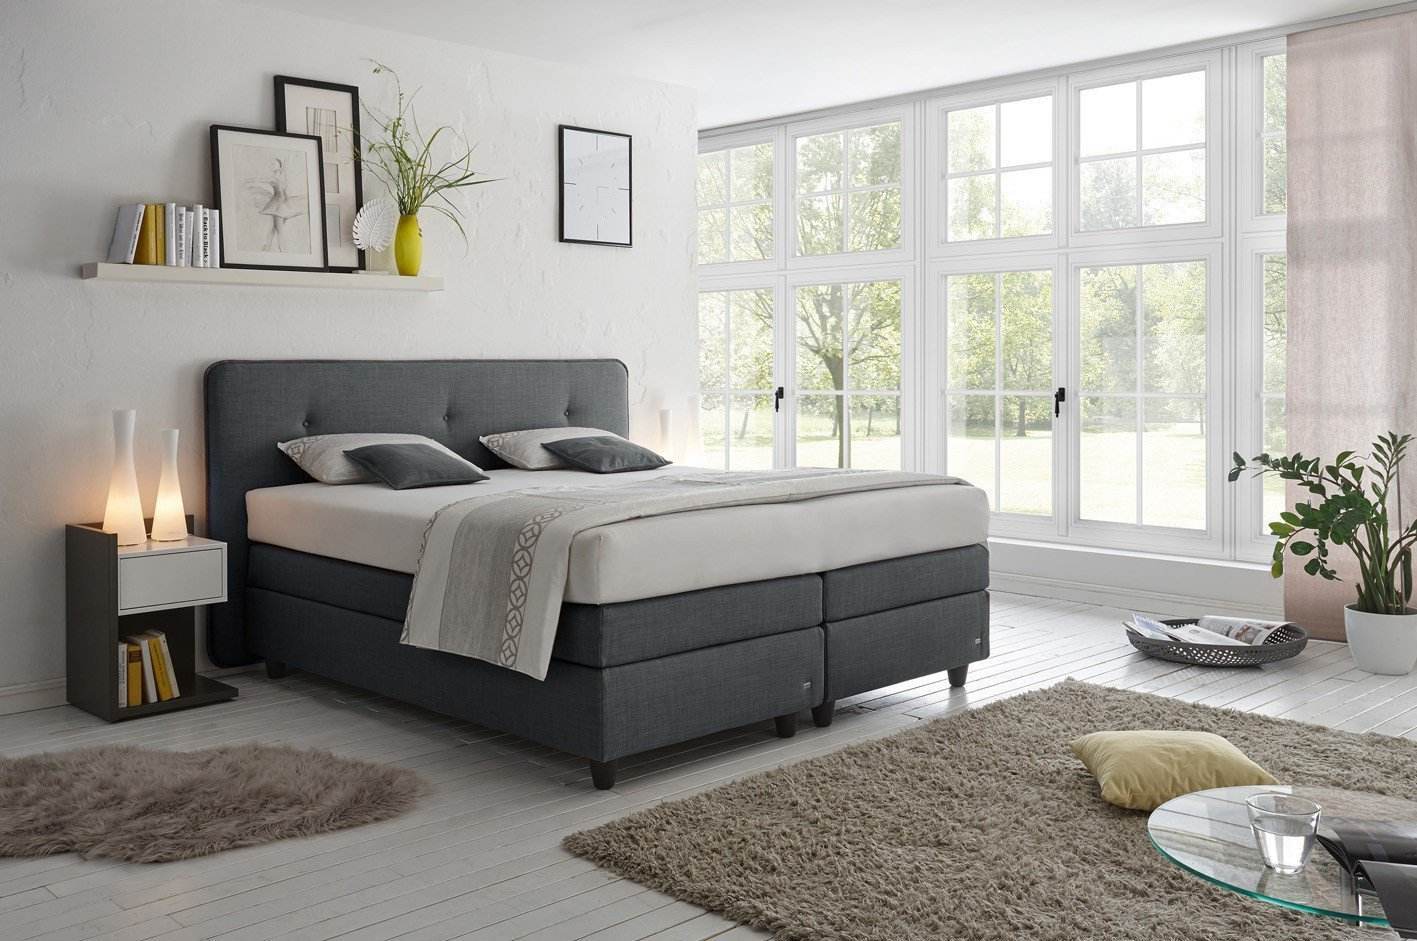 ruf modell vitessa boxspringbett in anthrazit m bel letz. Black Bedroom Furniture Sets. Home Design Ideas